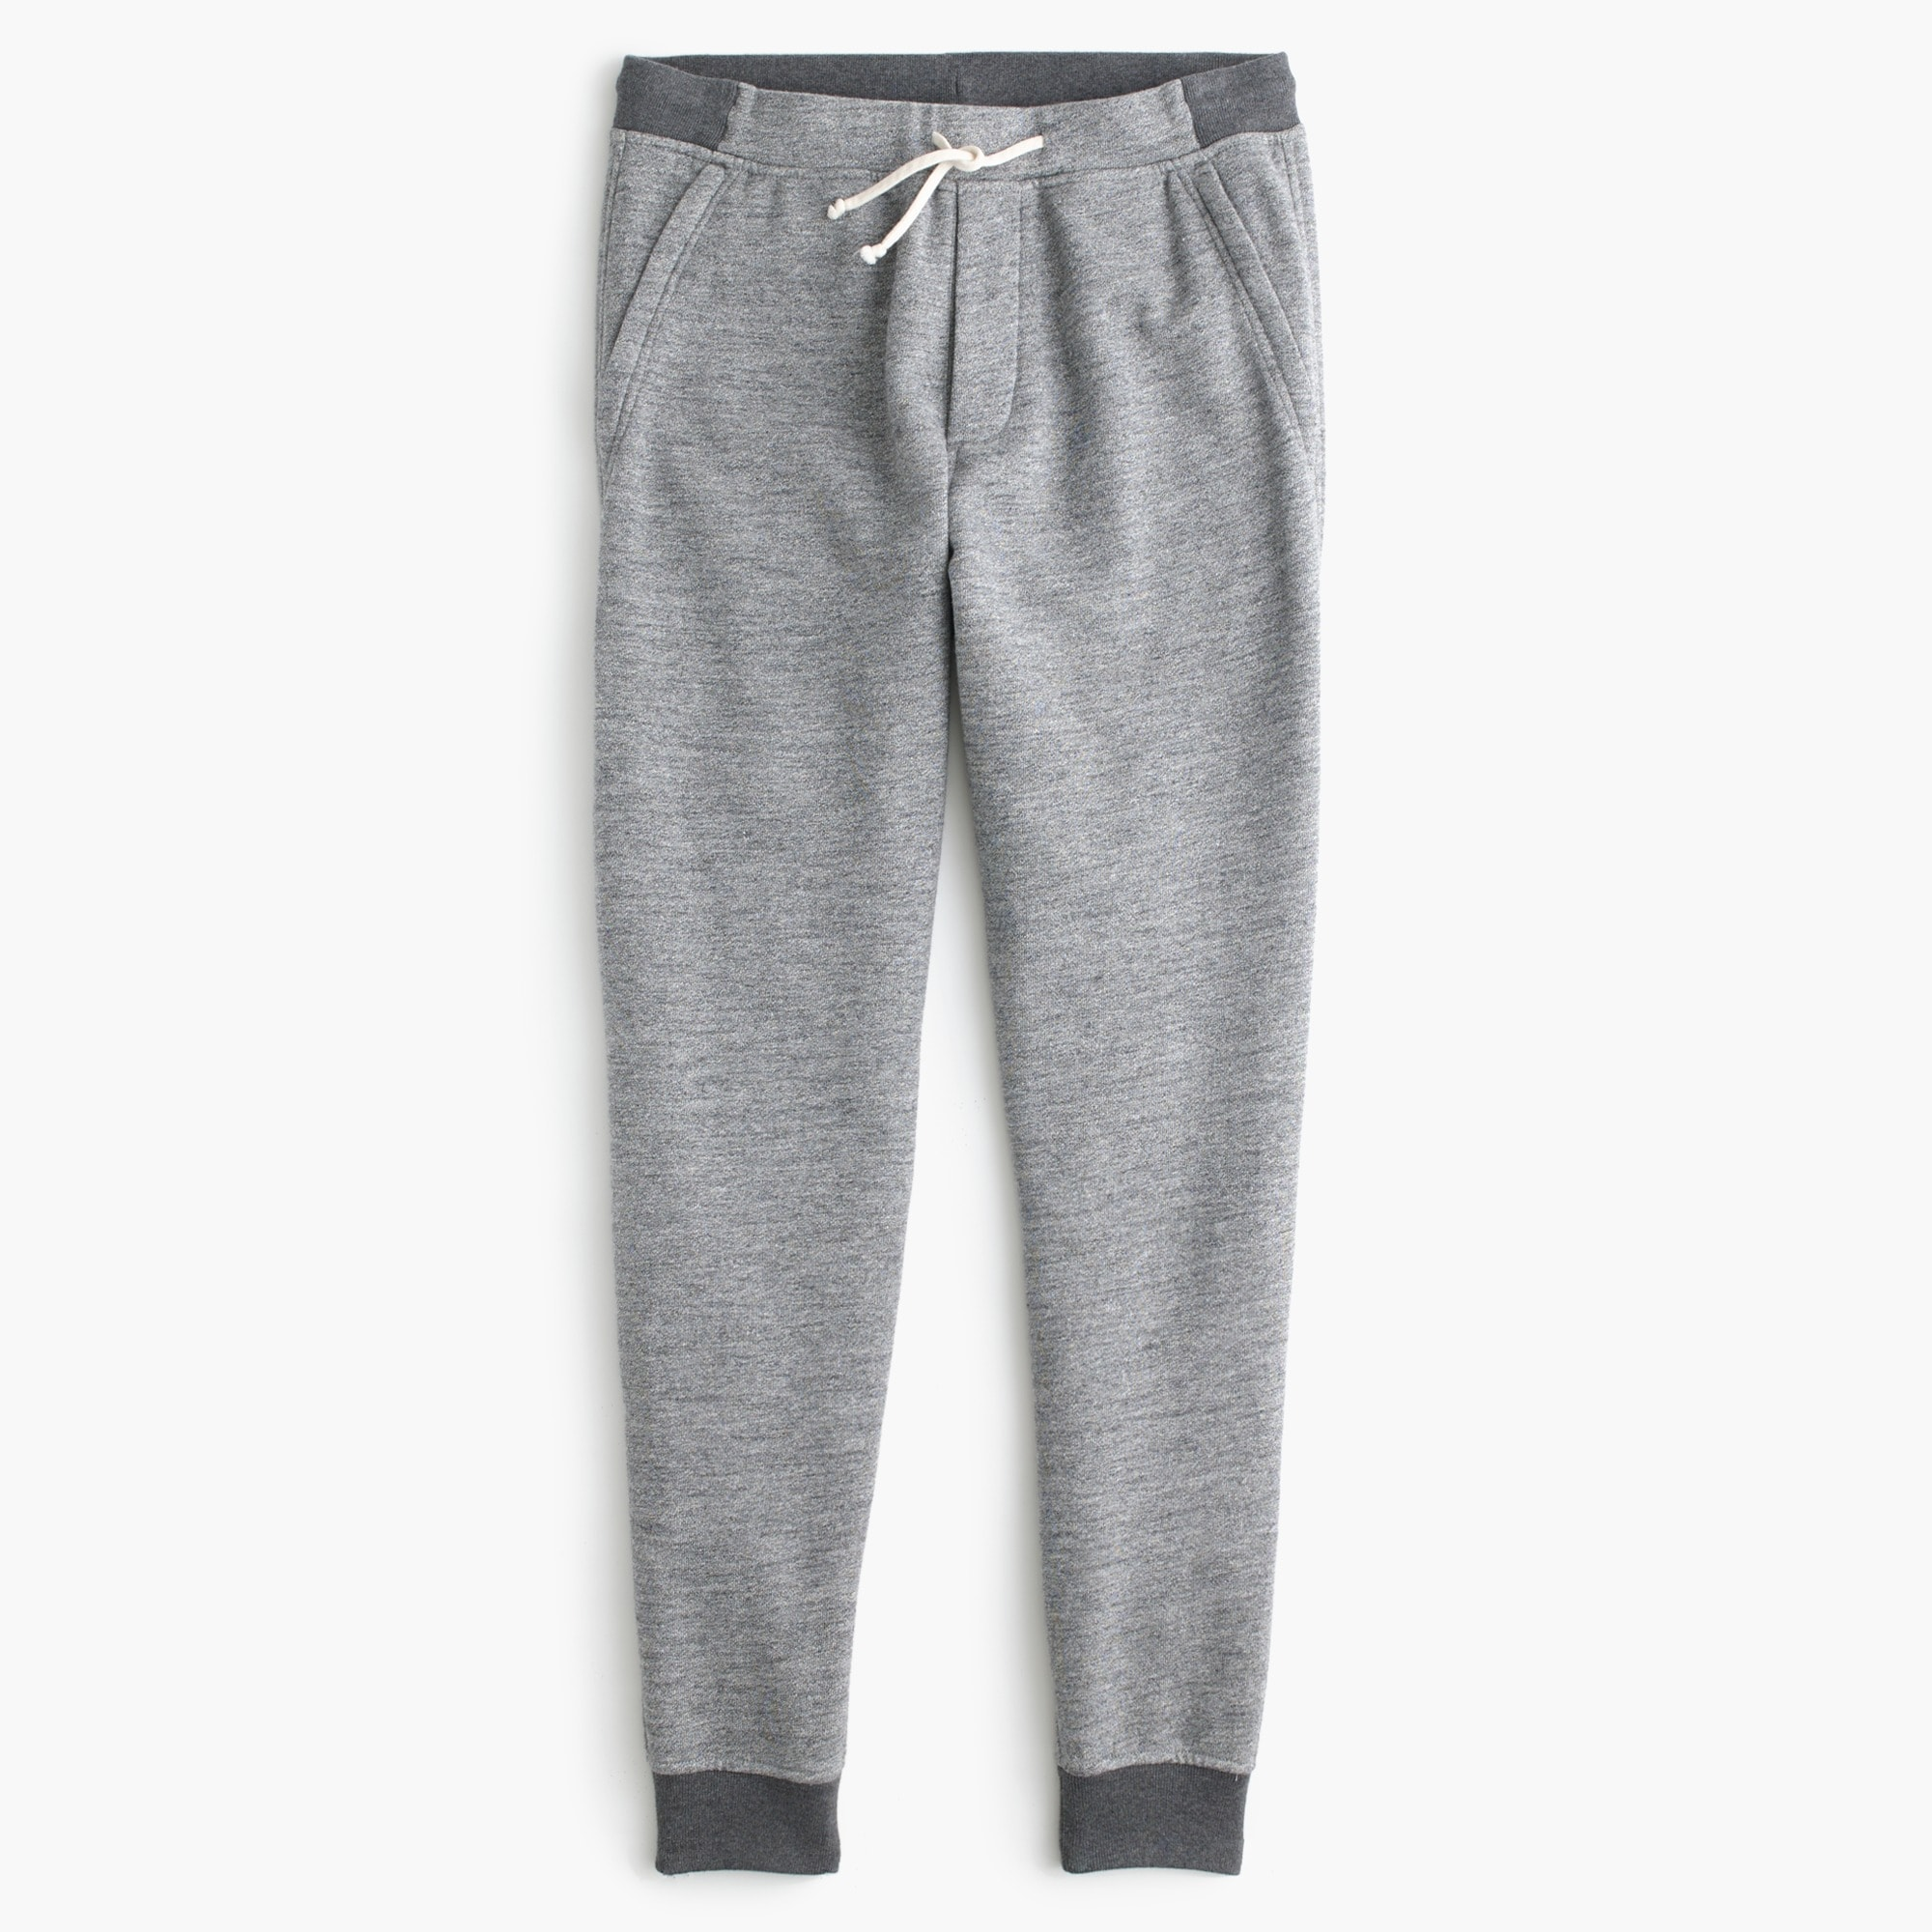 Image 2 for Classic zip-pocket sweatpant